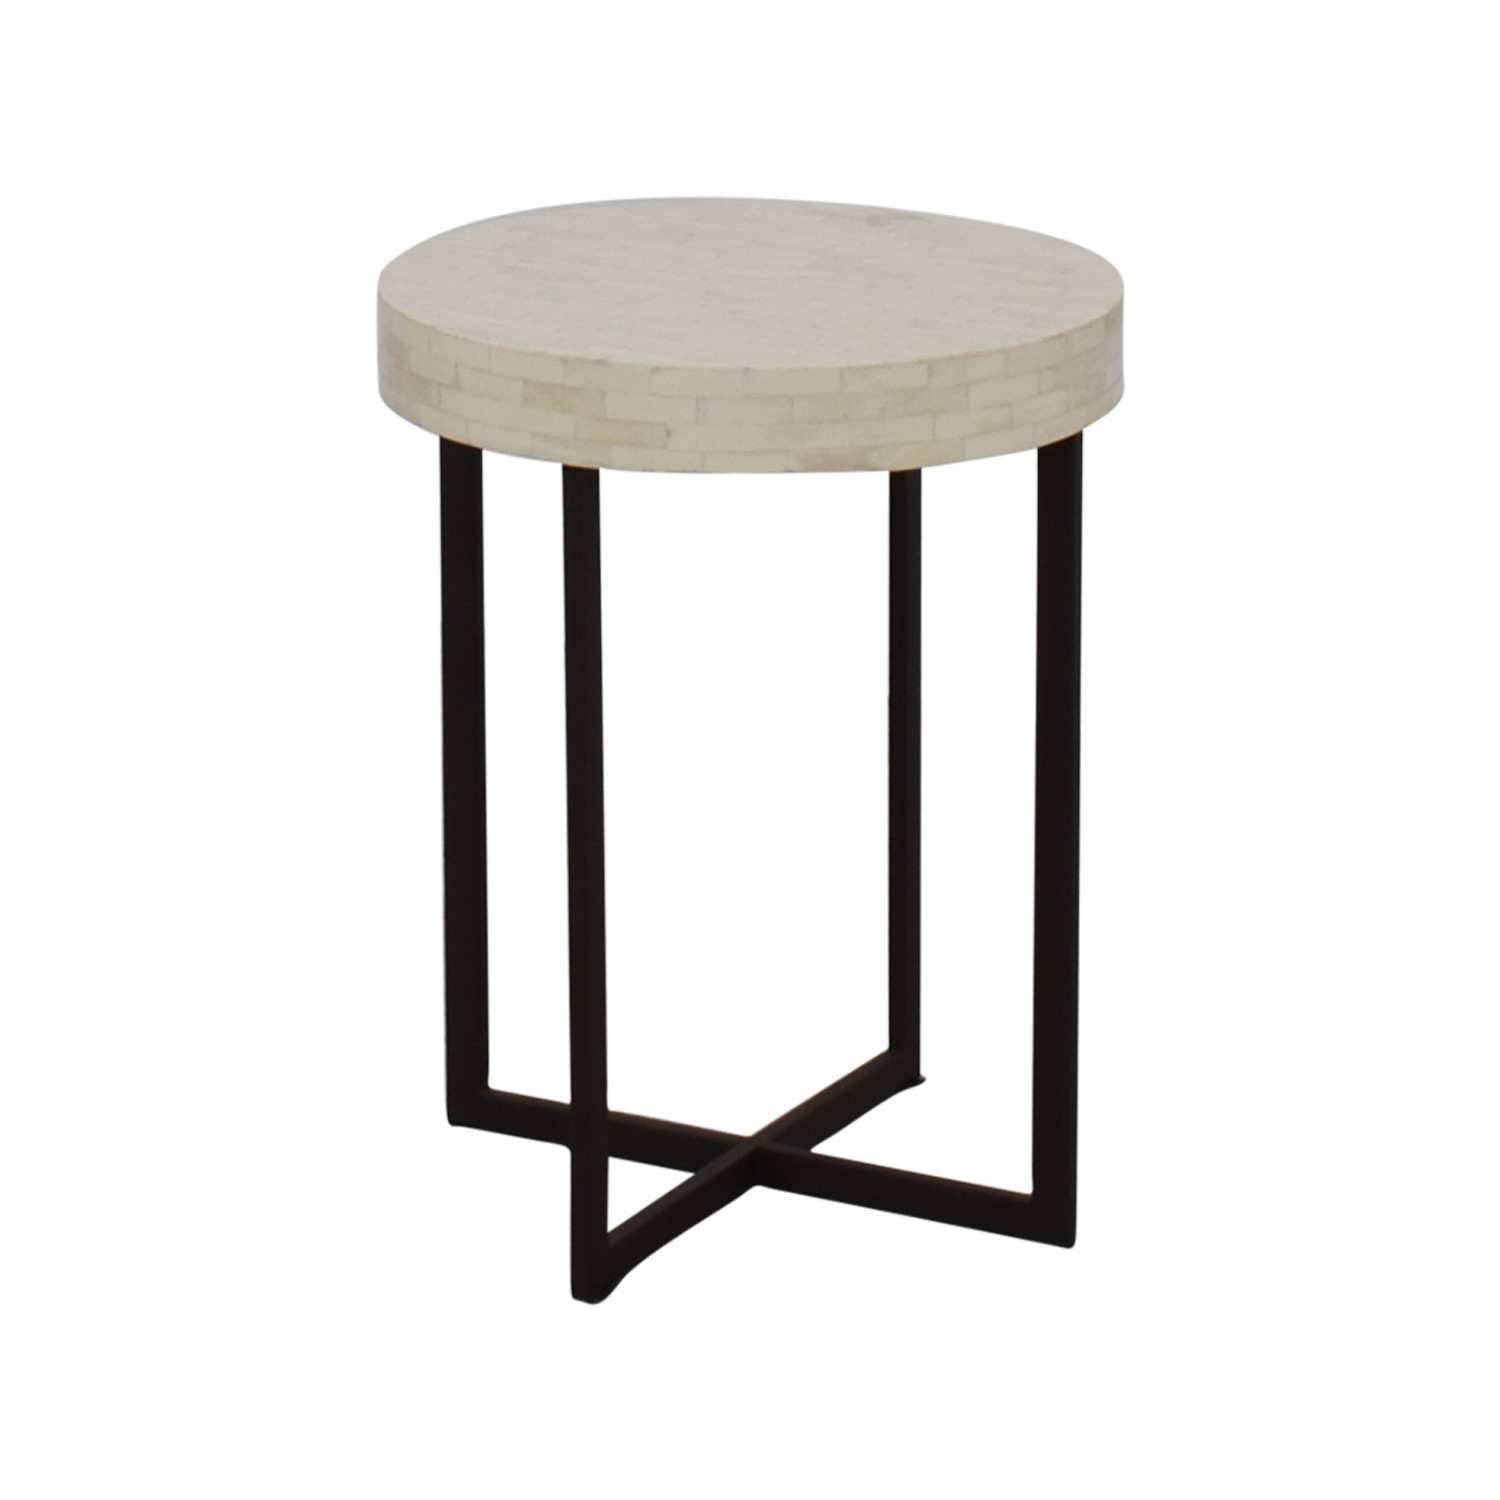 best west elm accent table for martini side ideas luxury off bone tables narrow marble coffee jcpenney kitchen curtains super slim console acacia wood with small nesting set